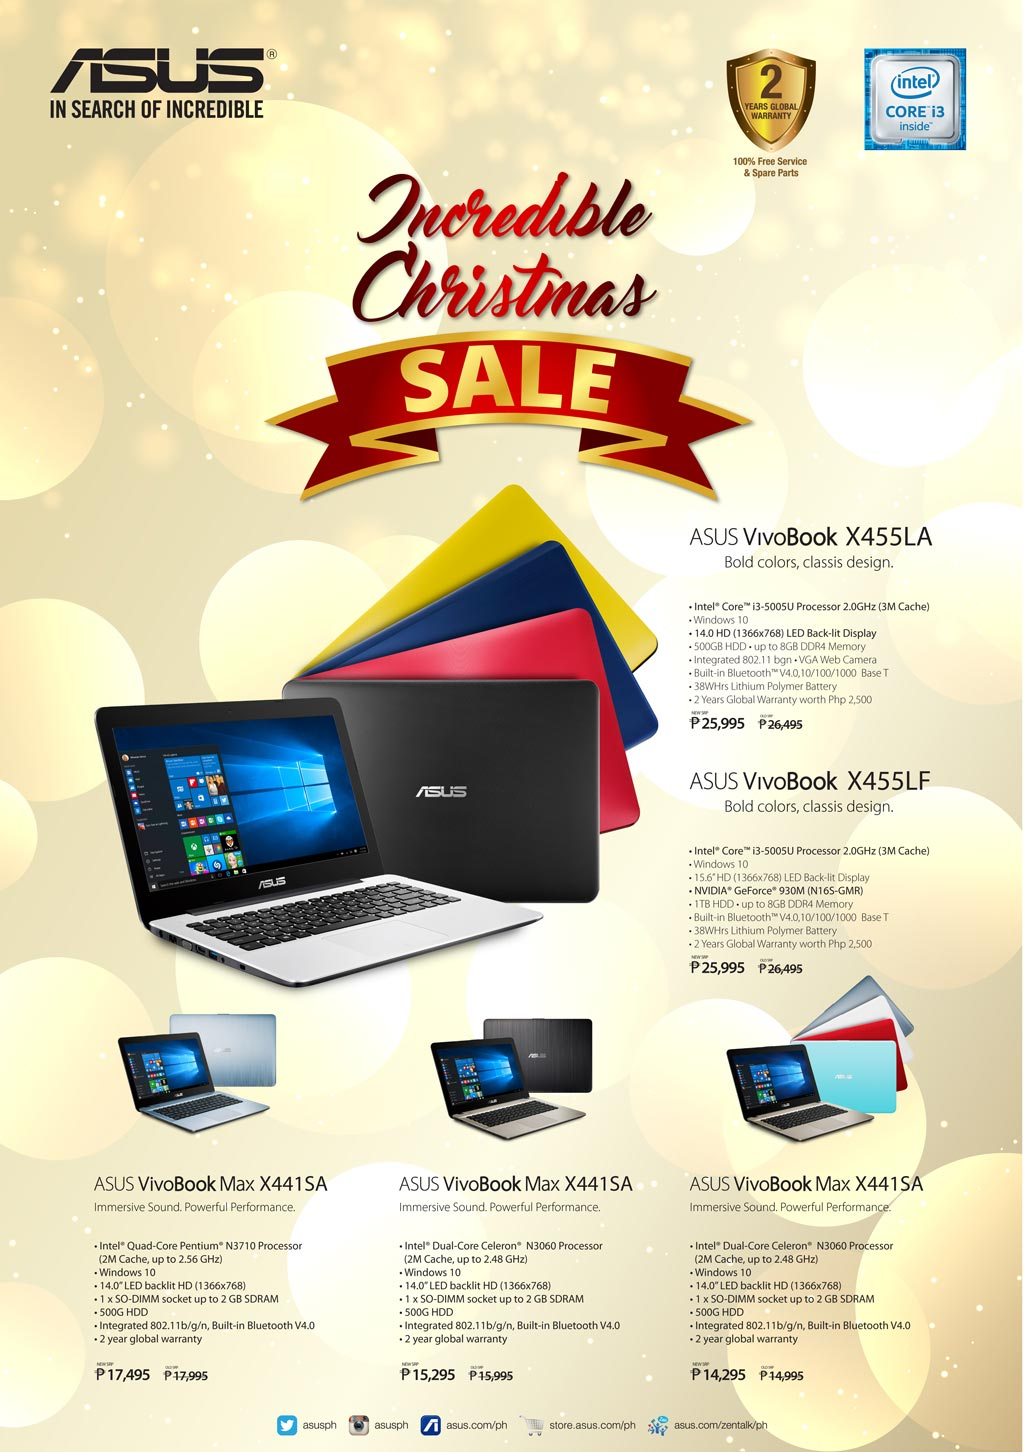 ASUS PH will have an Incredible Christmas Sale on its VivoBooks